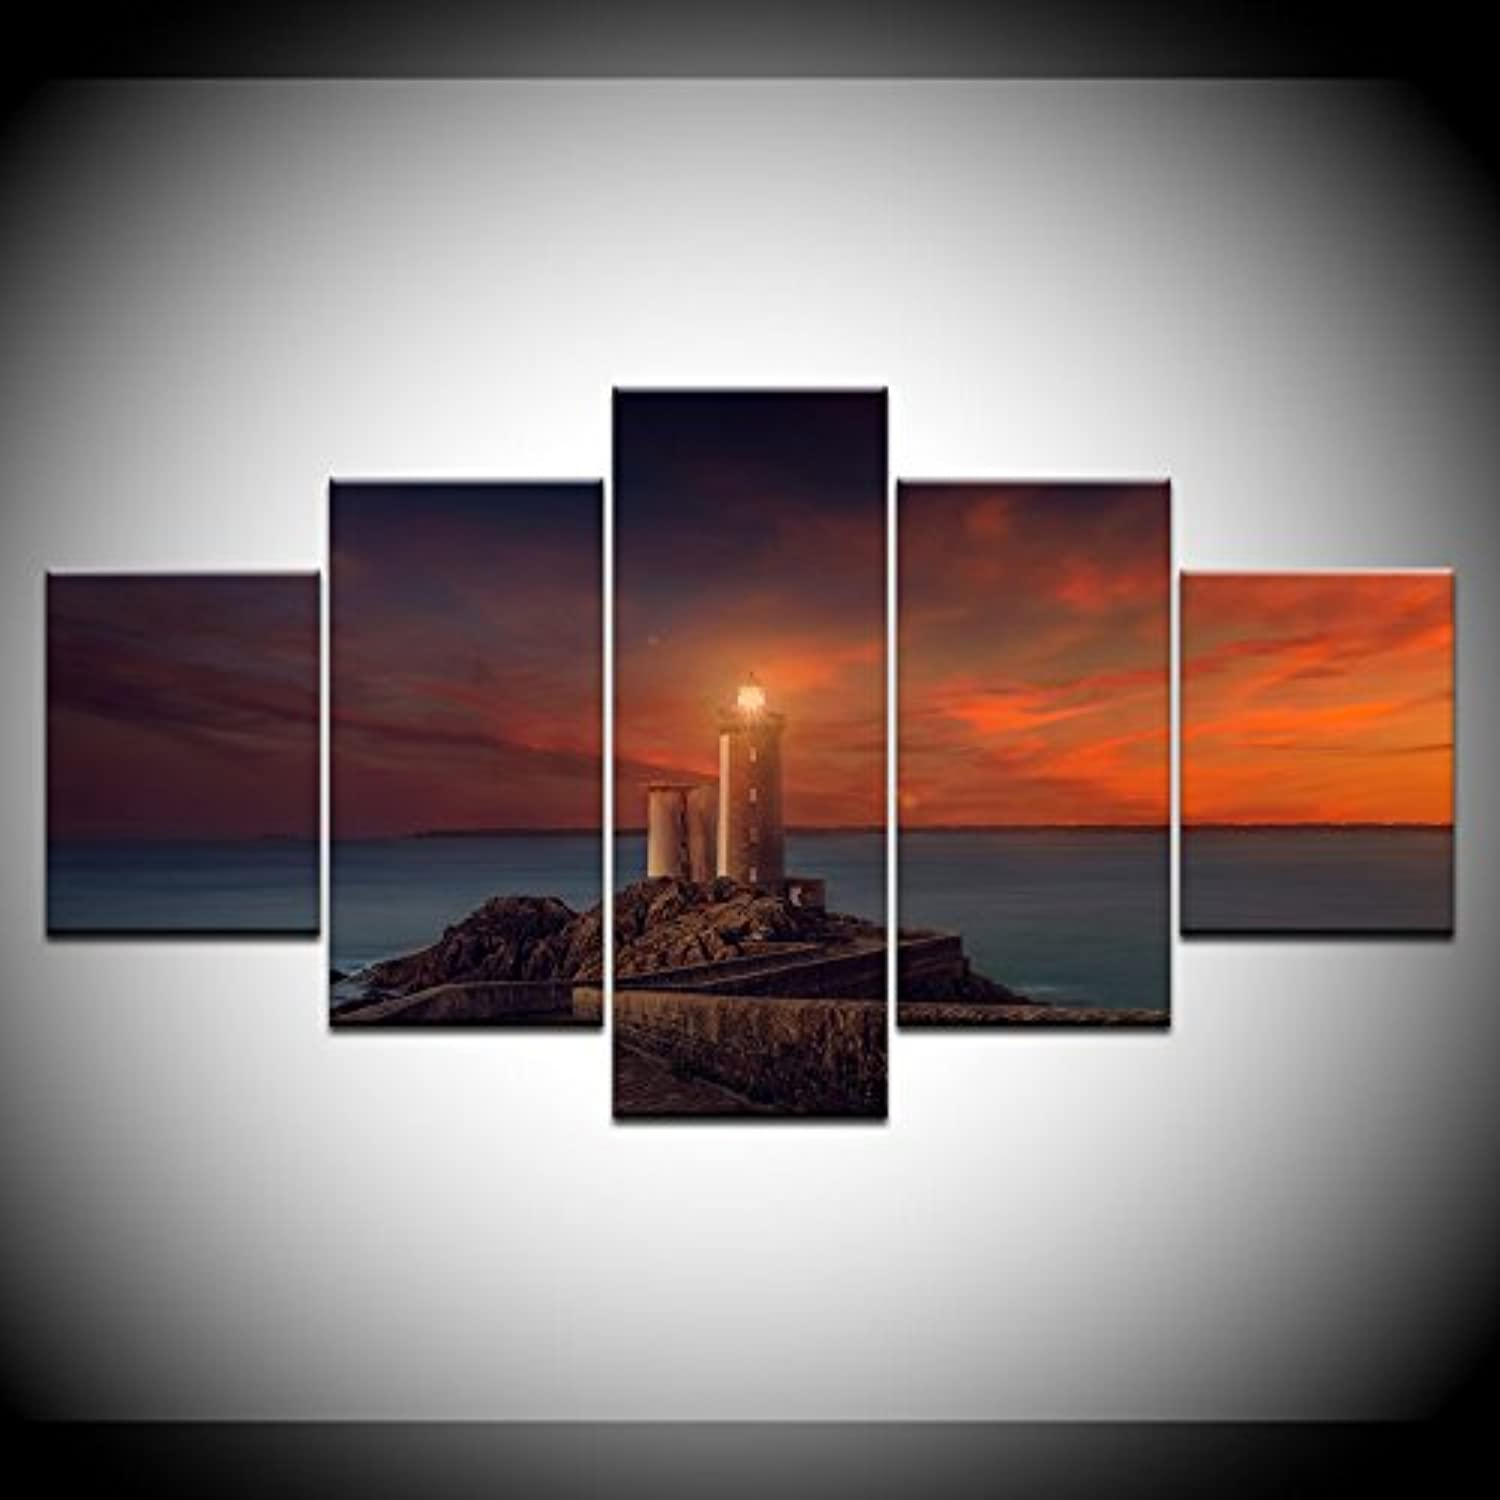 Living Room HD Printed Wall Art Picture Painting 5 Pcs Sea Lighthouse Rosy Clouds View Modern Home Decor Poster Frame